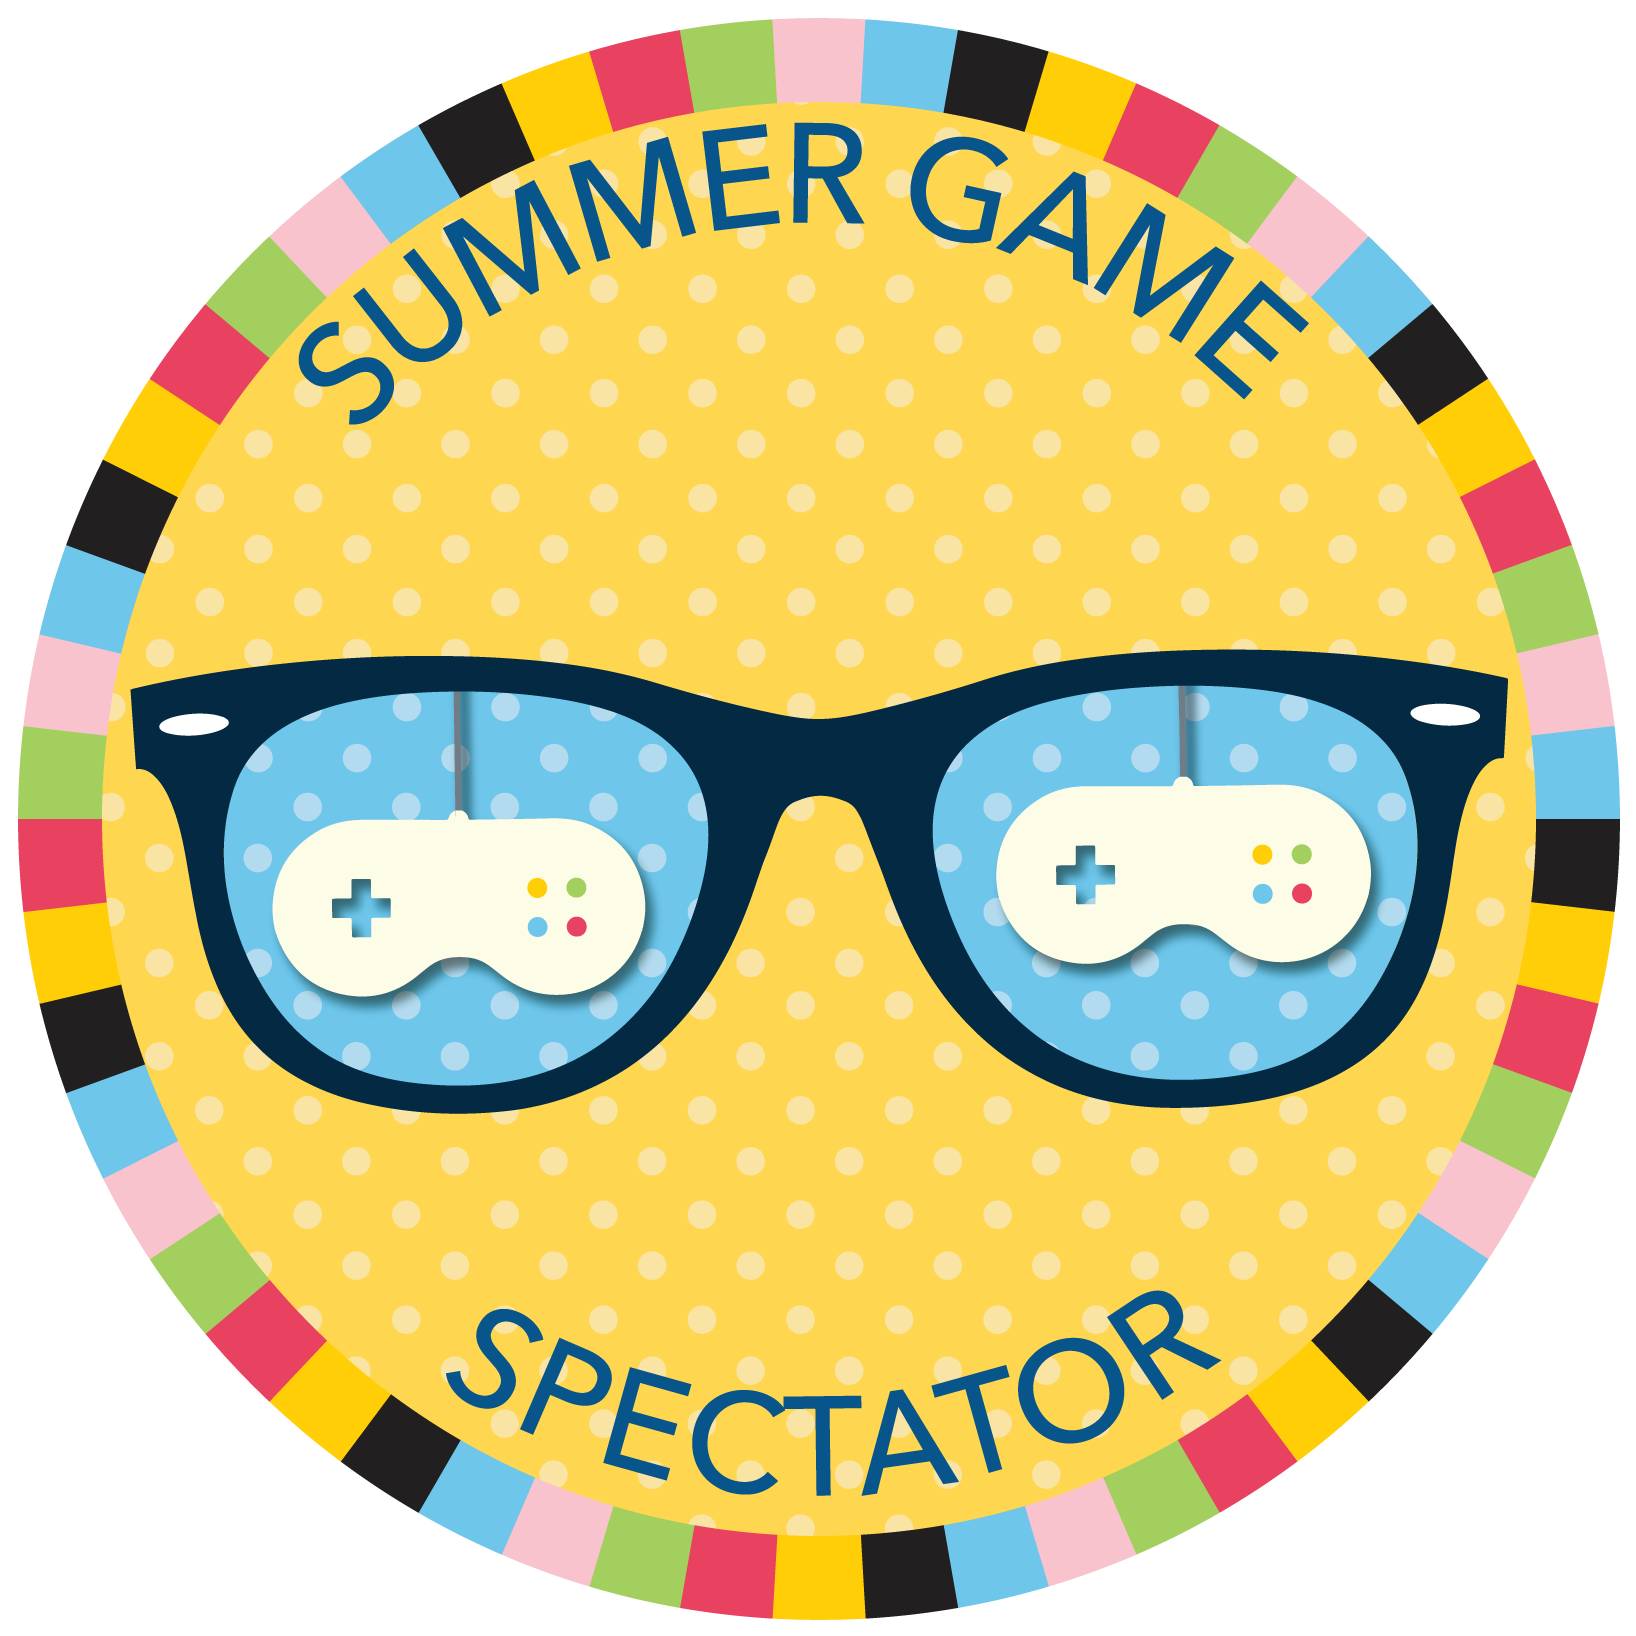 Summer Game Spectator badge image